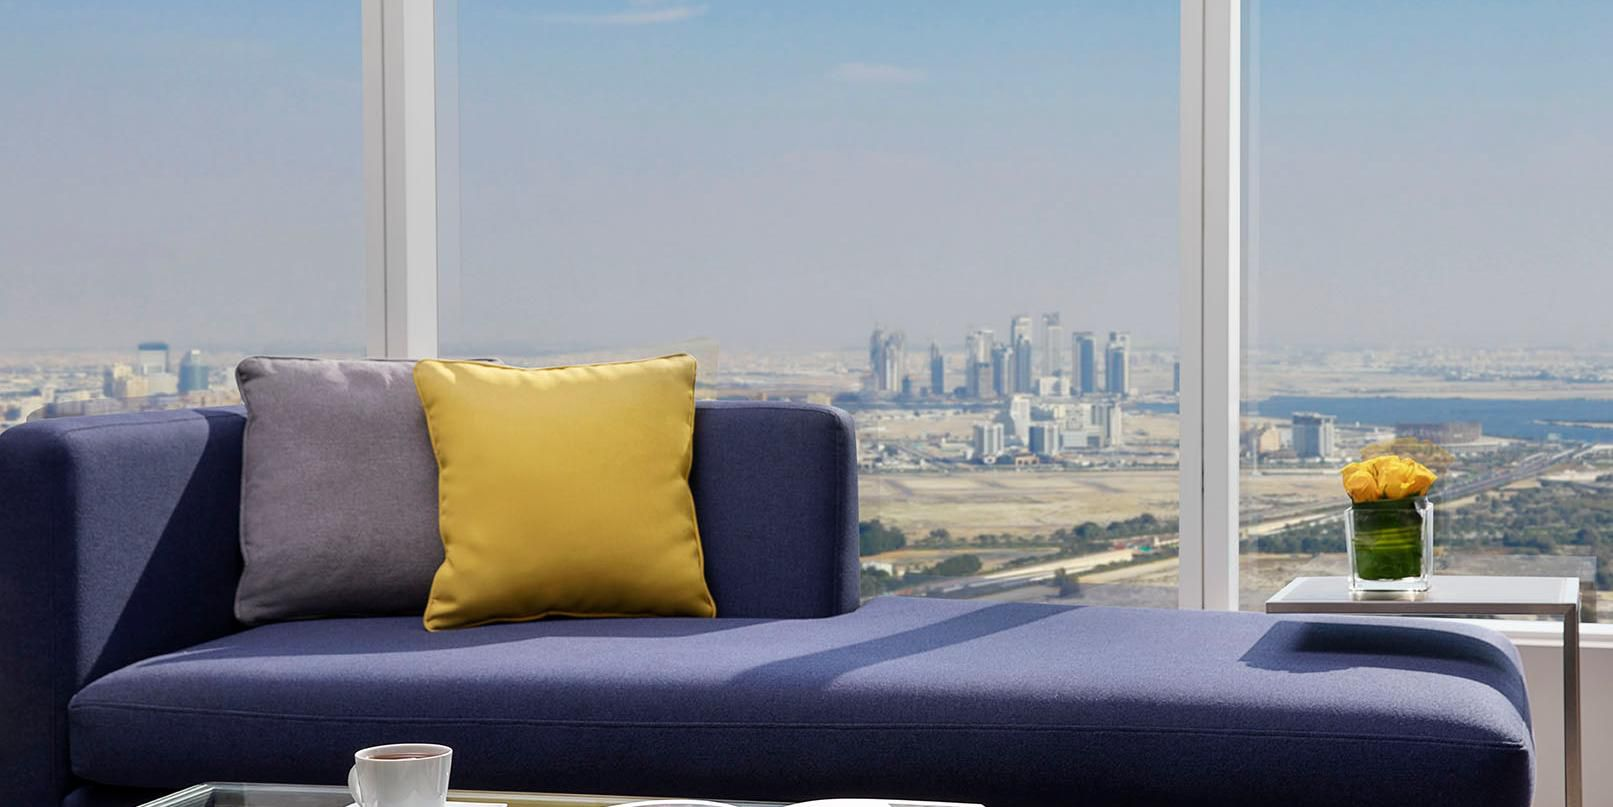 Ambassador Suite lounge, with views of Shiekh Road or Jumeirah